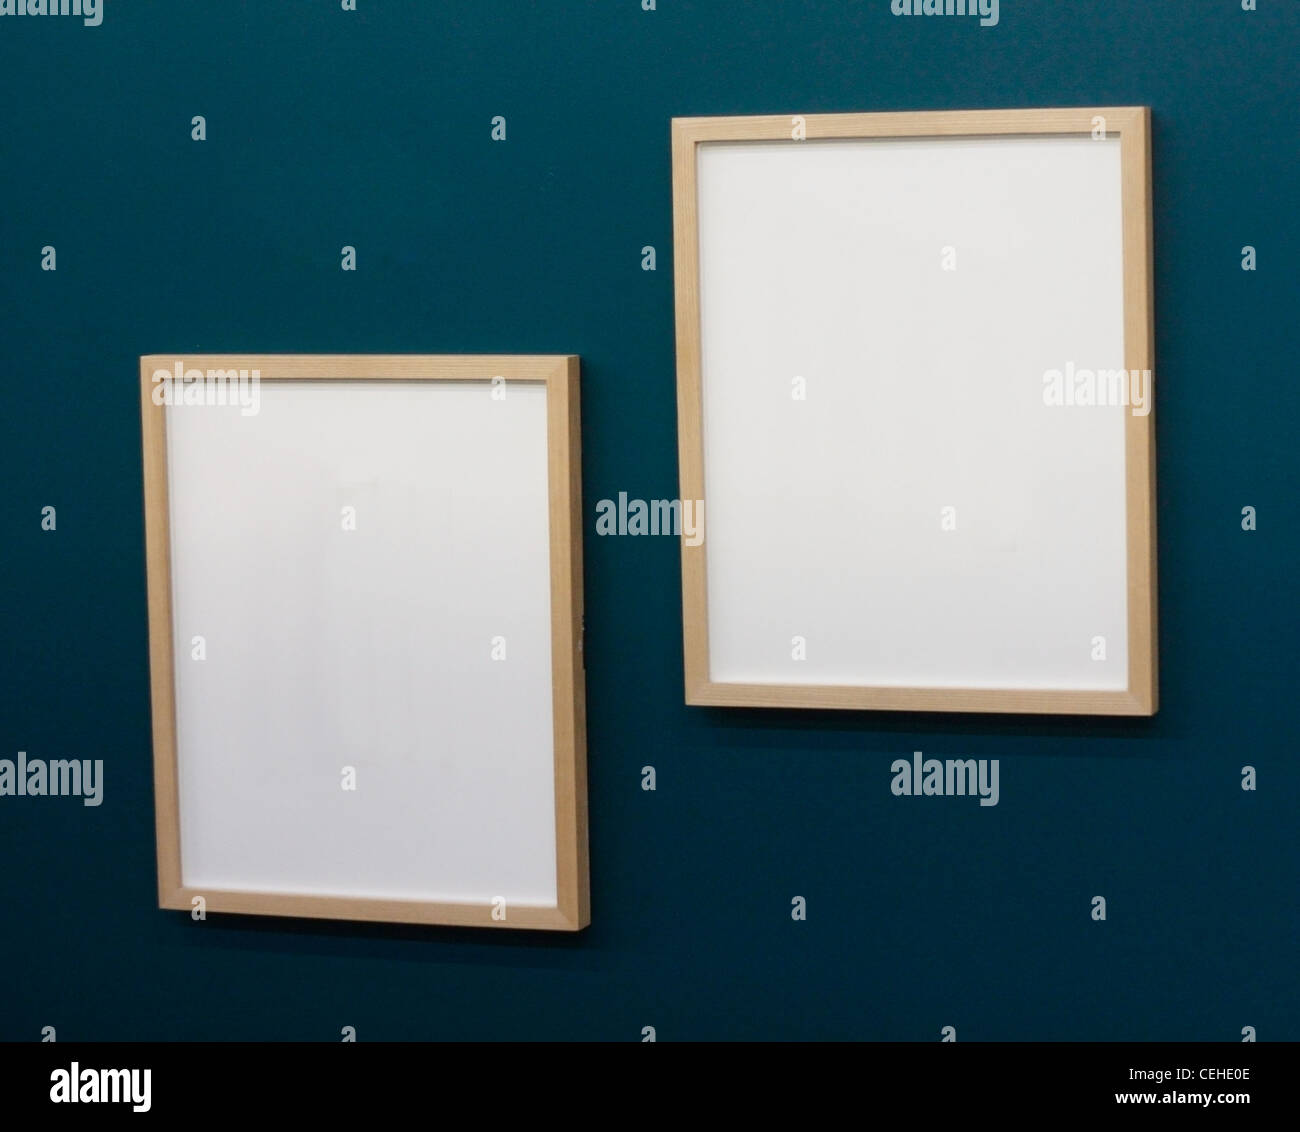 Empty frames on wall - Stock Image